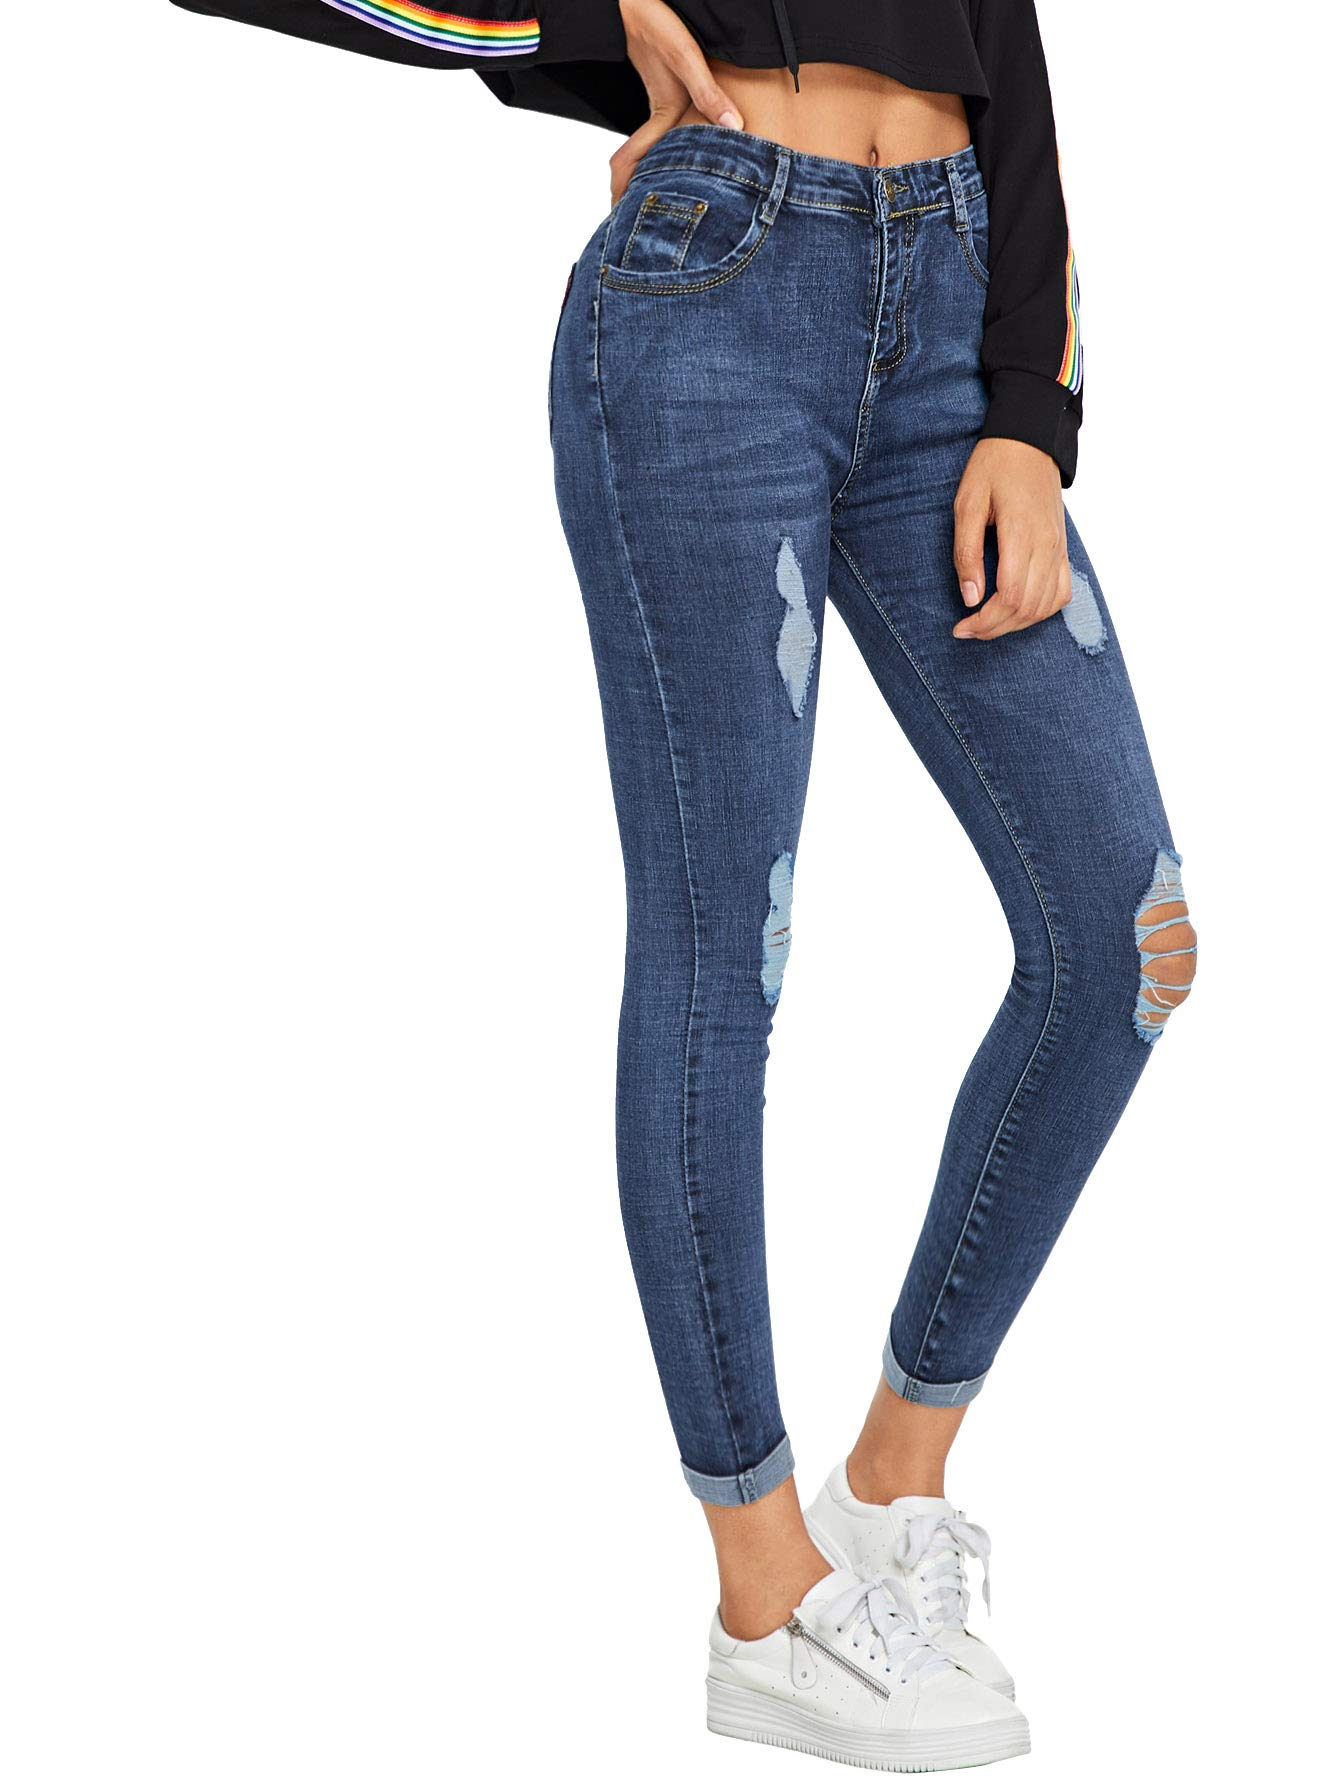 Floerns Women's Ripped Skinny Jeans Navy M